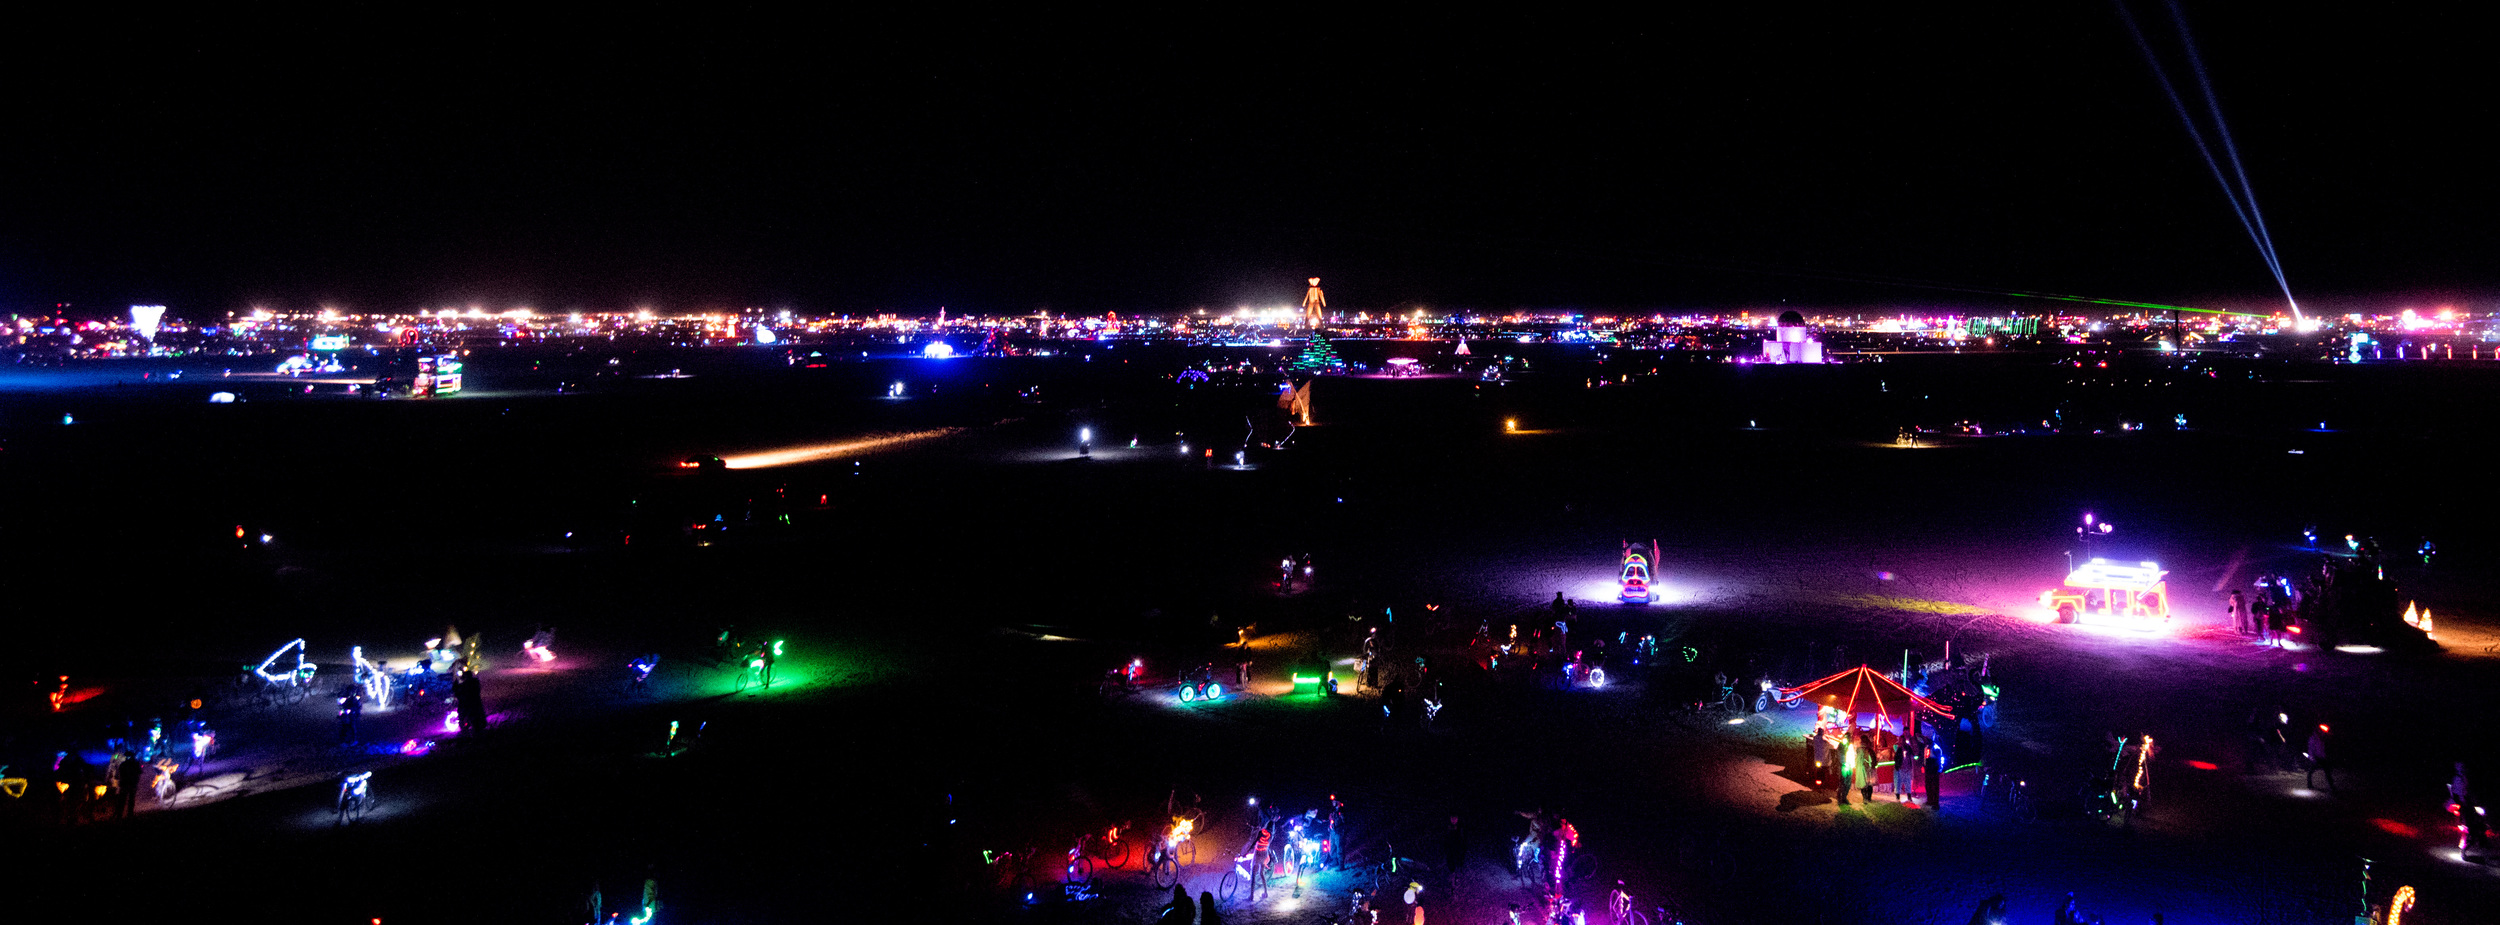 The never ending party on the Playa.( click on image to enlarge)